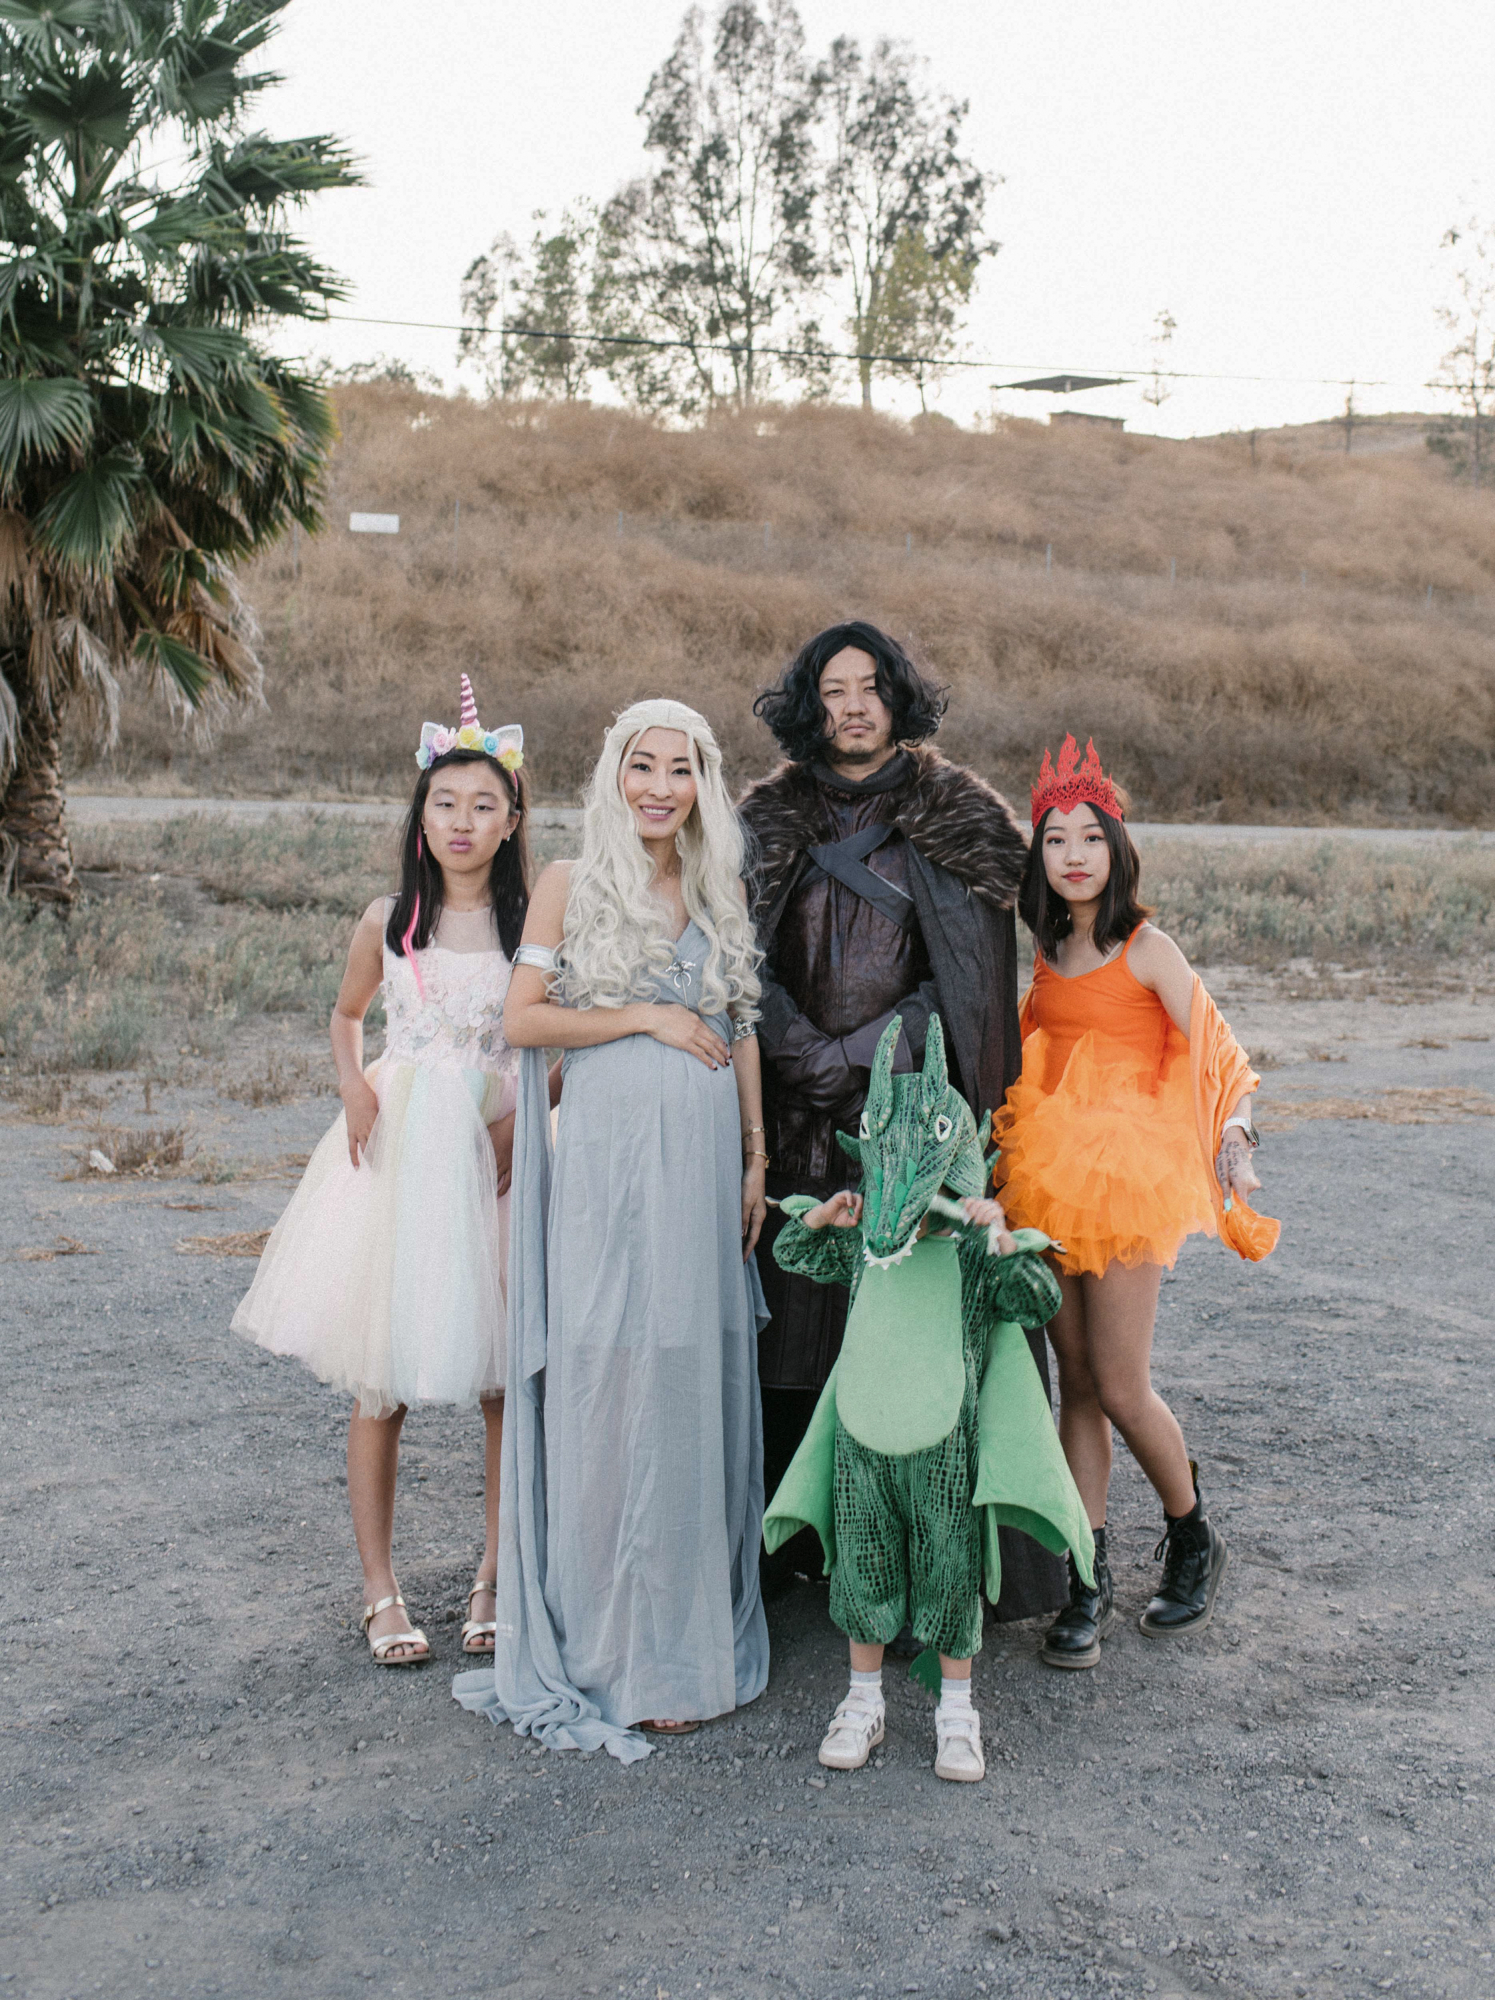 Game of Thrones costume for families